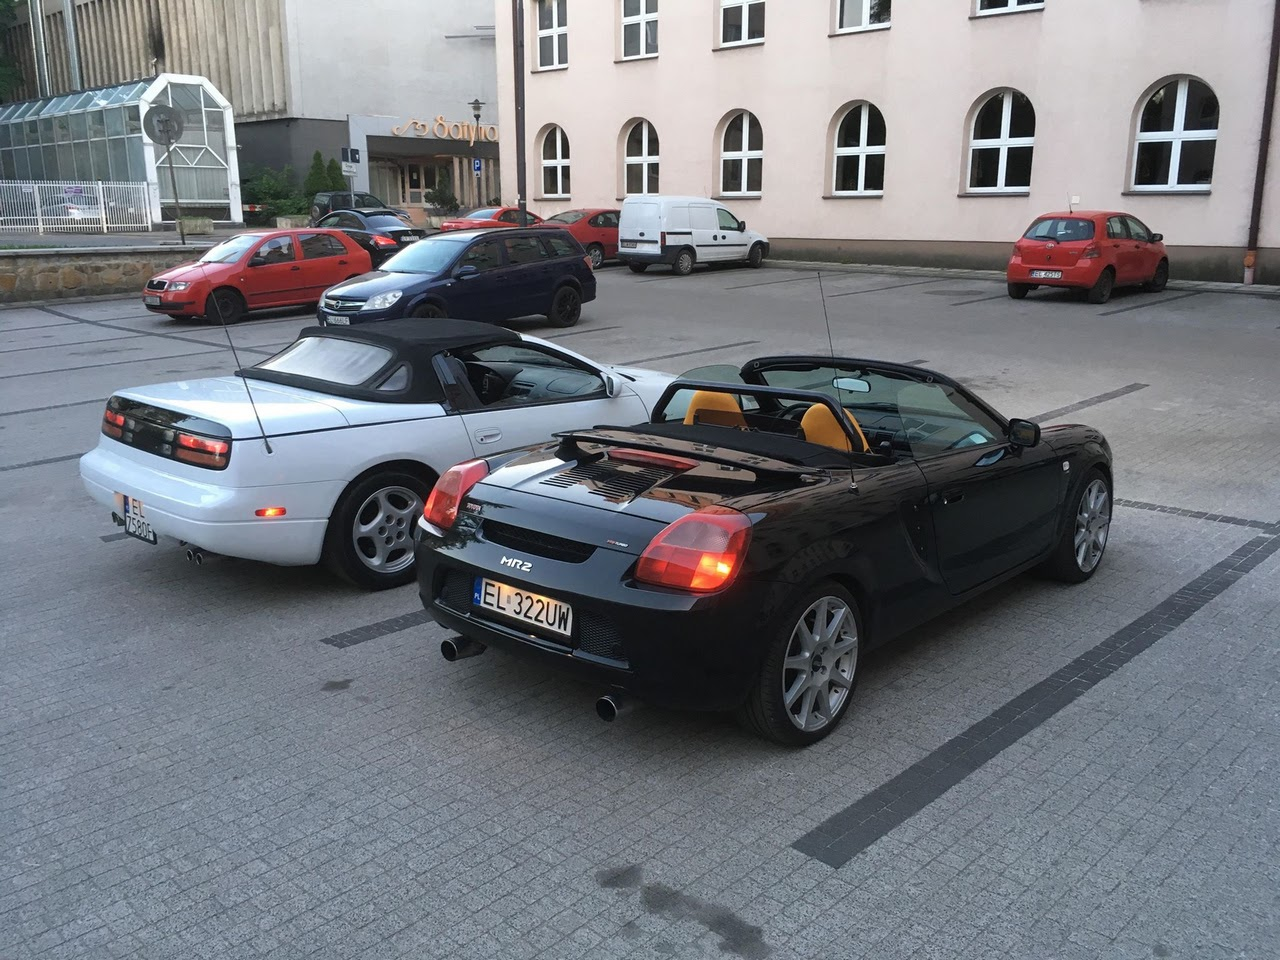 Nissan 300ZX Z32 kabriolet, Toyota MR2 turbo